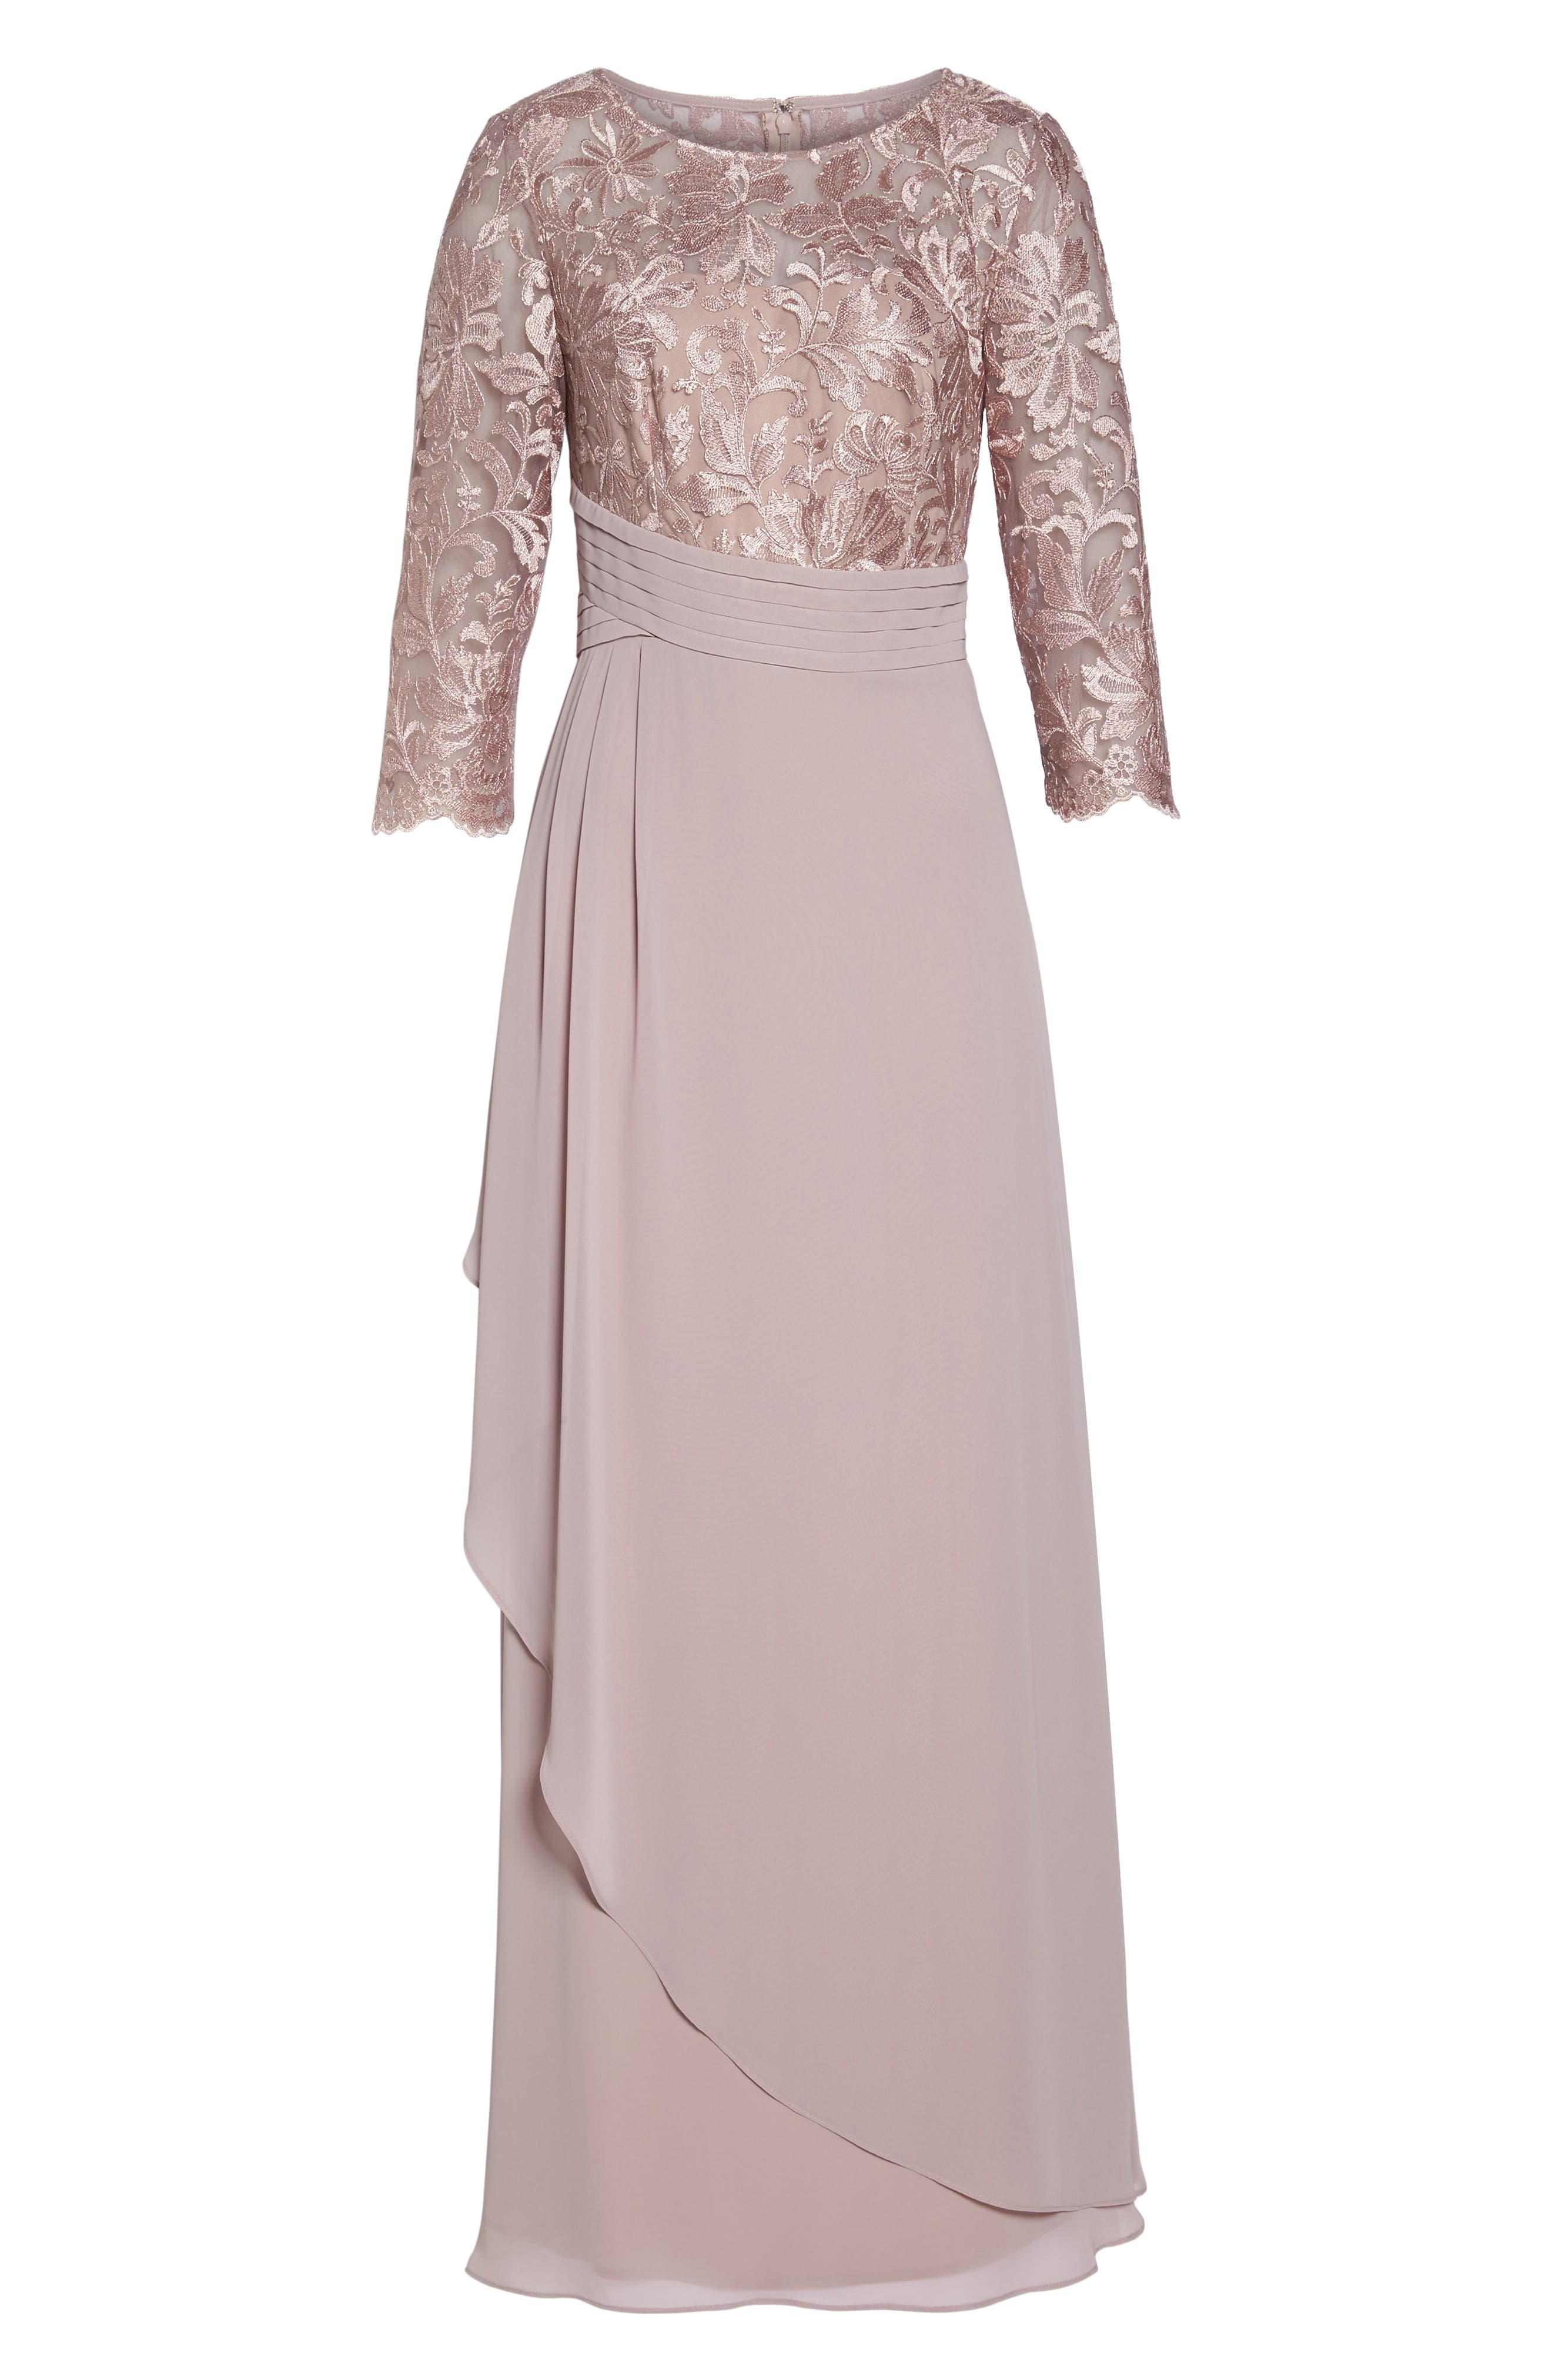 ALEX EVENINGS, Embroidered A-Line Gown, Alternate thumbnail 6, color, 695